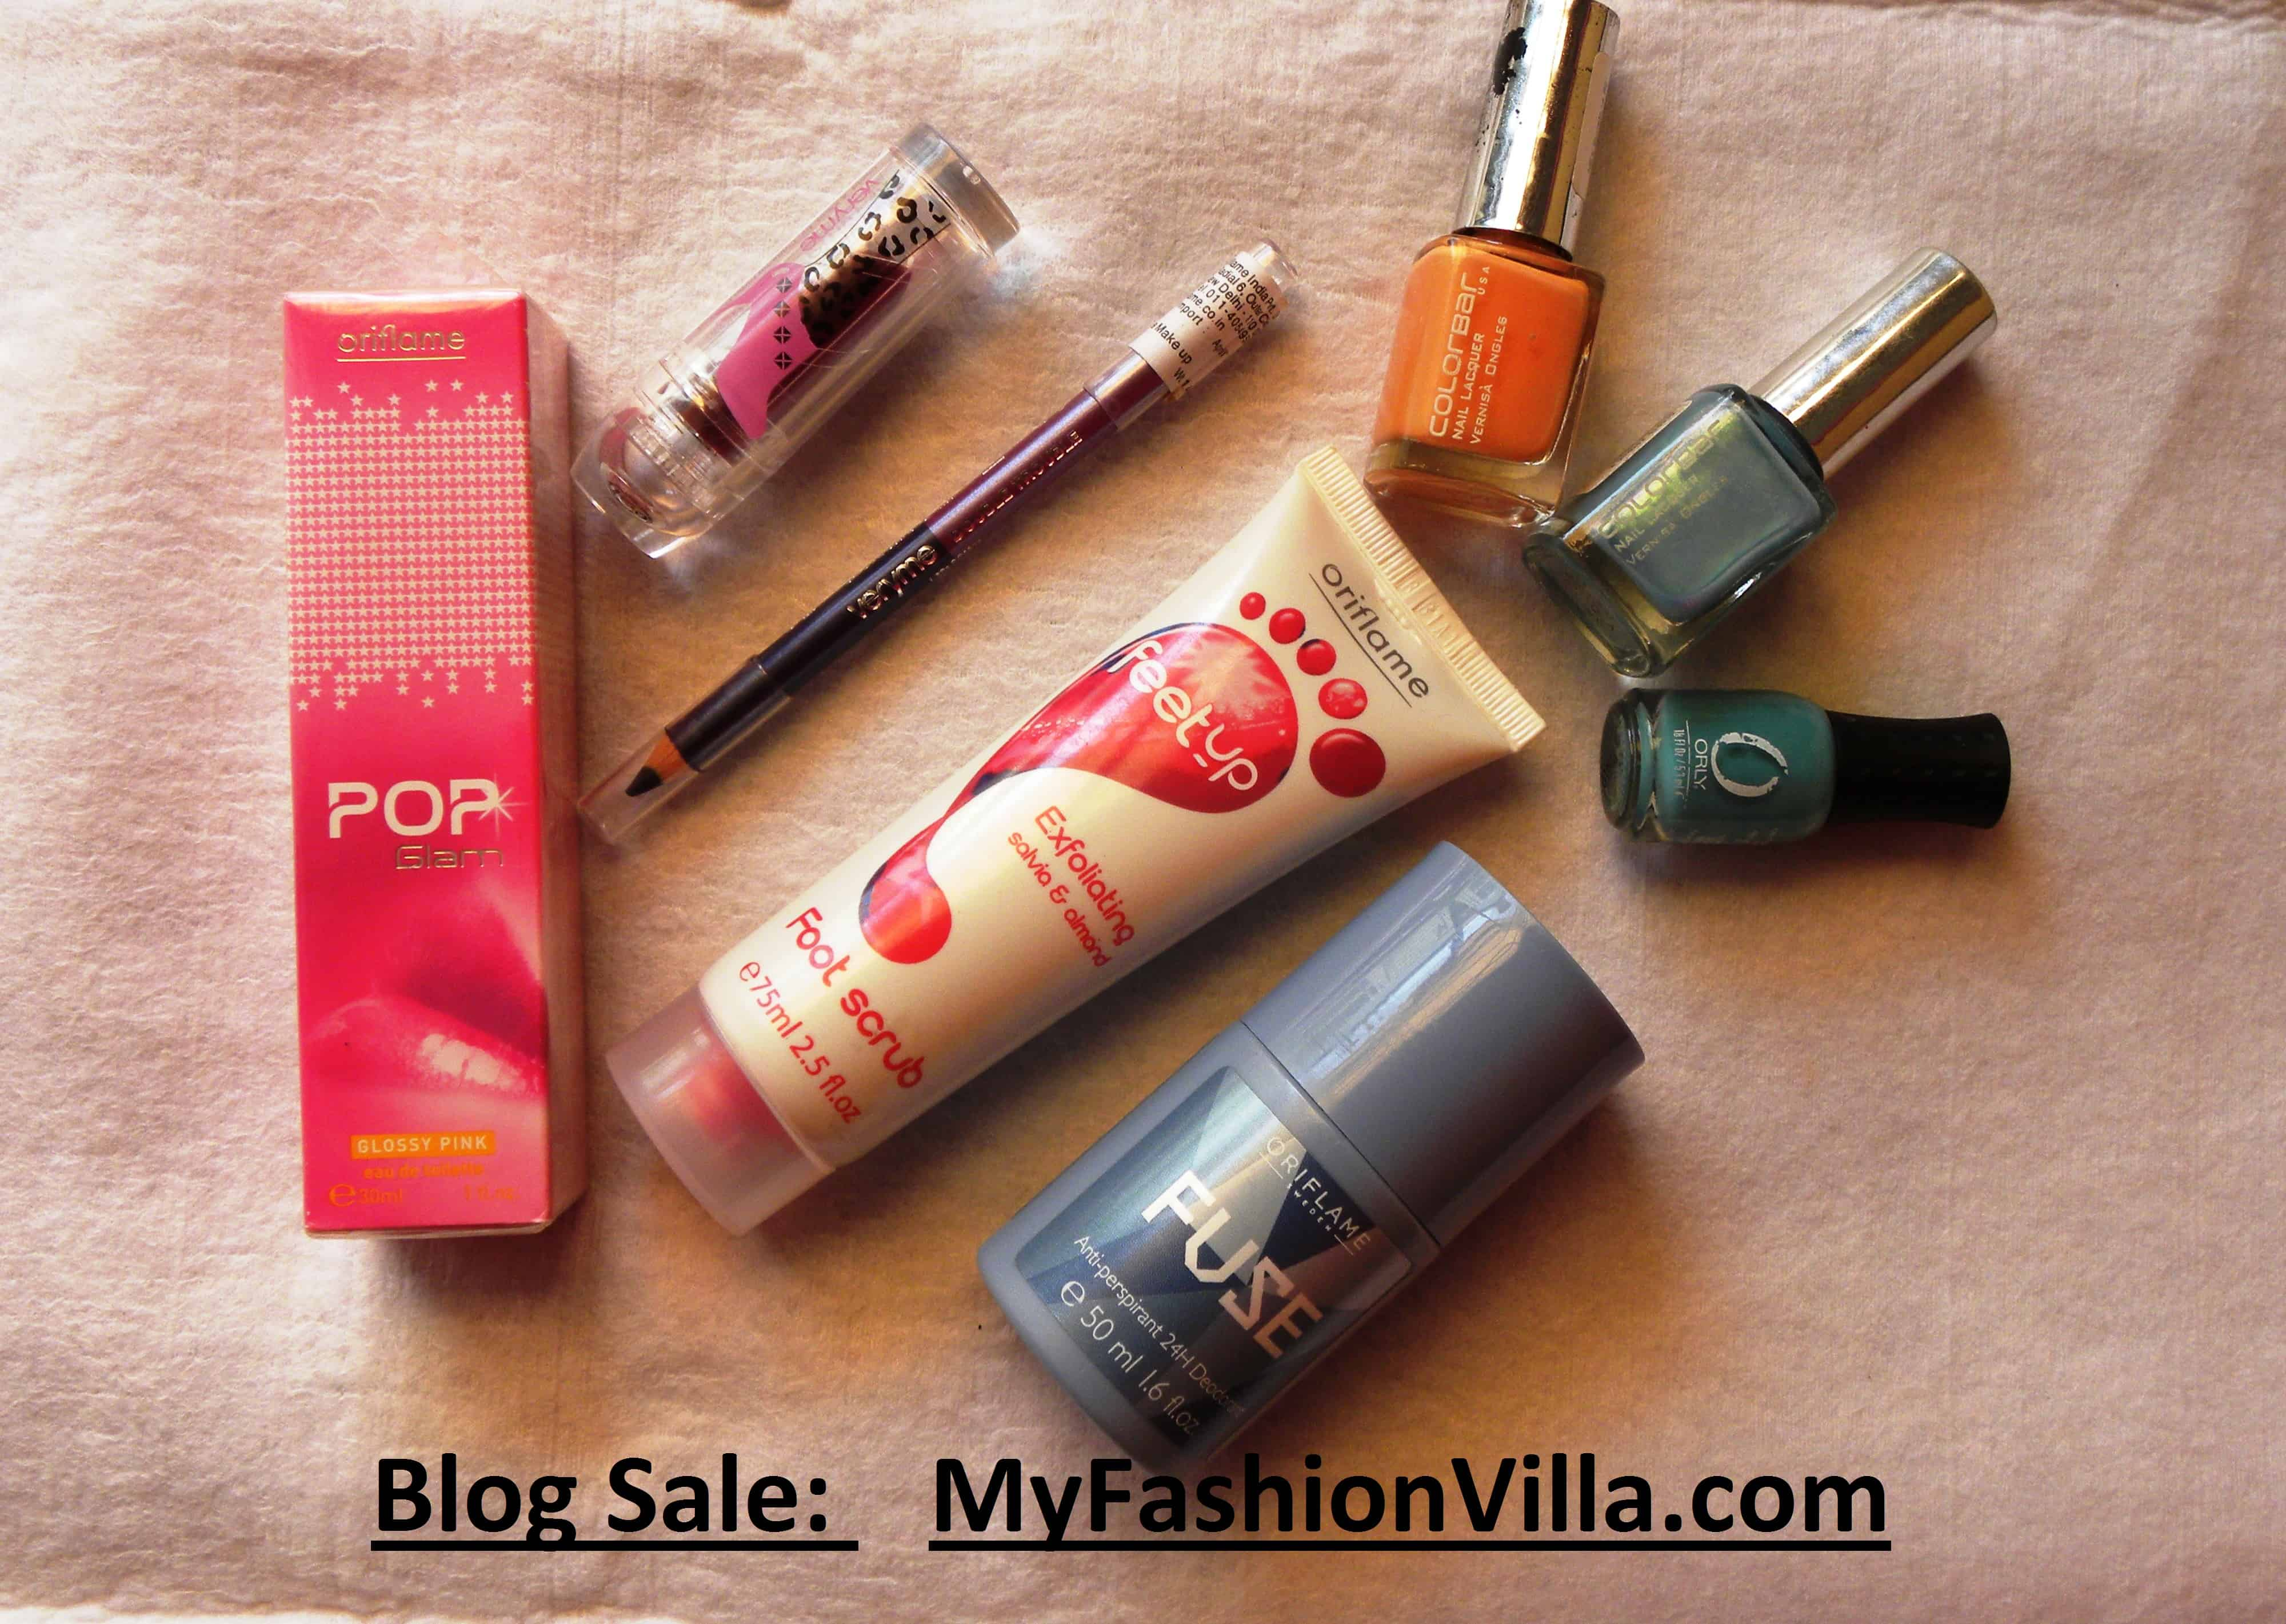 Beauty Blog Sale on Myfashionvilla.com – Skincare, Makeup & More